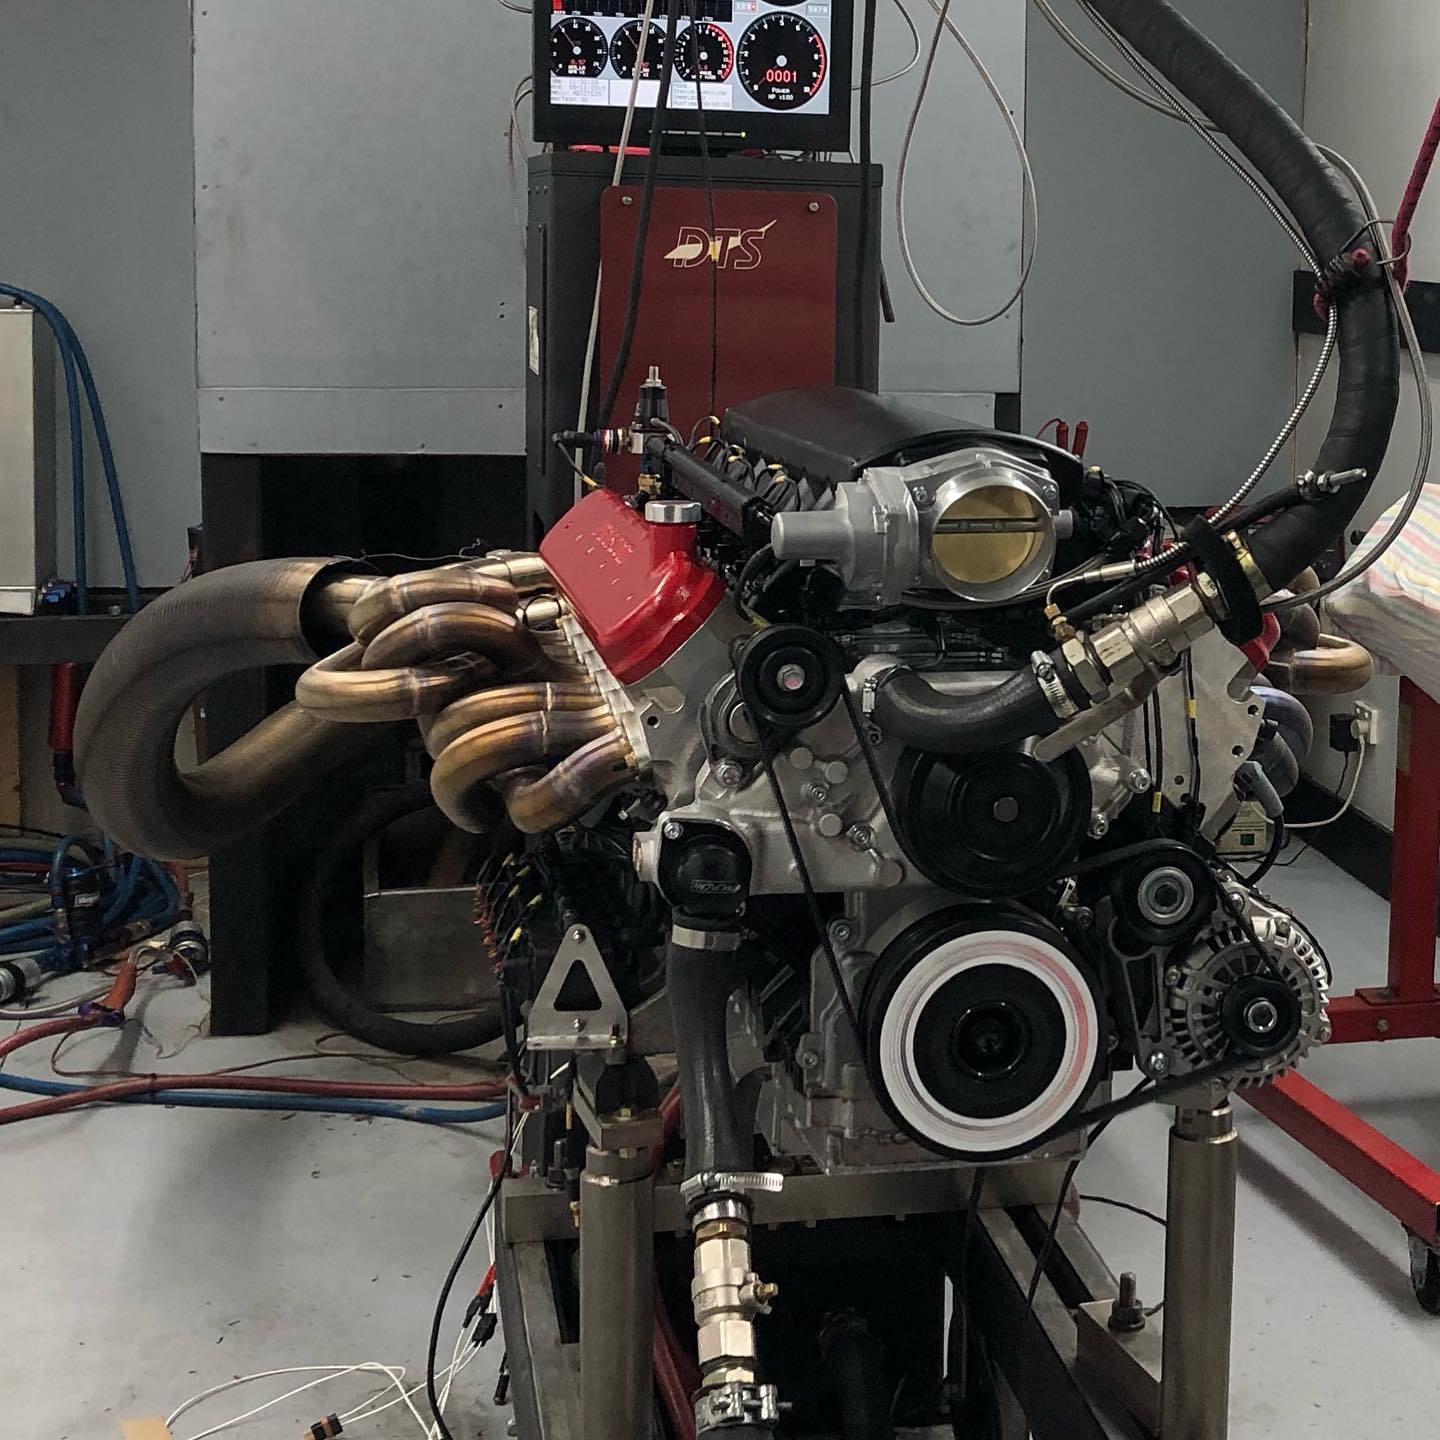 9.5 L LSx V12 on the dyno